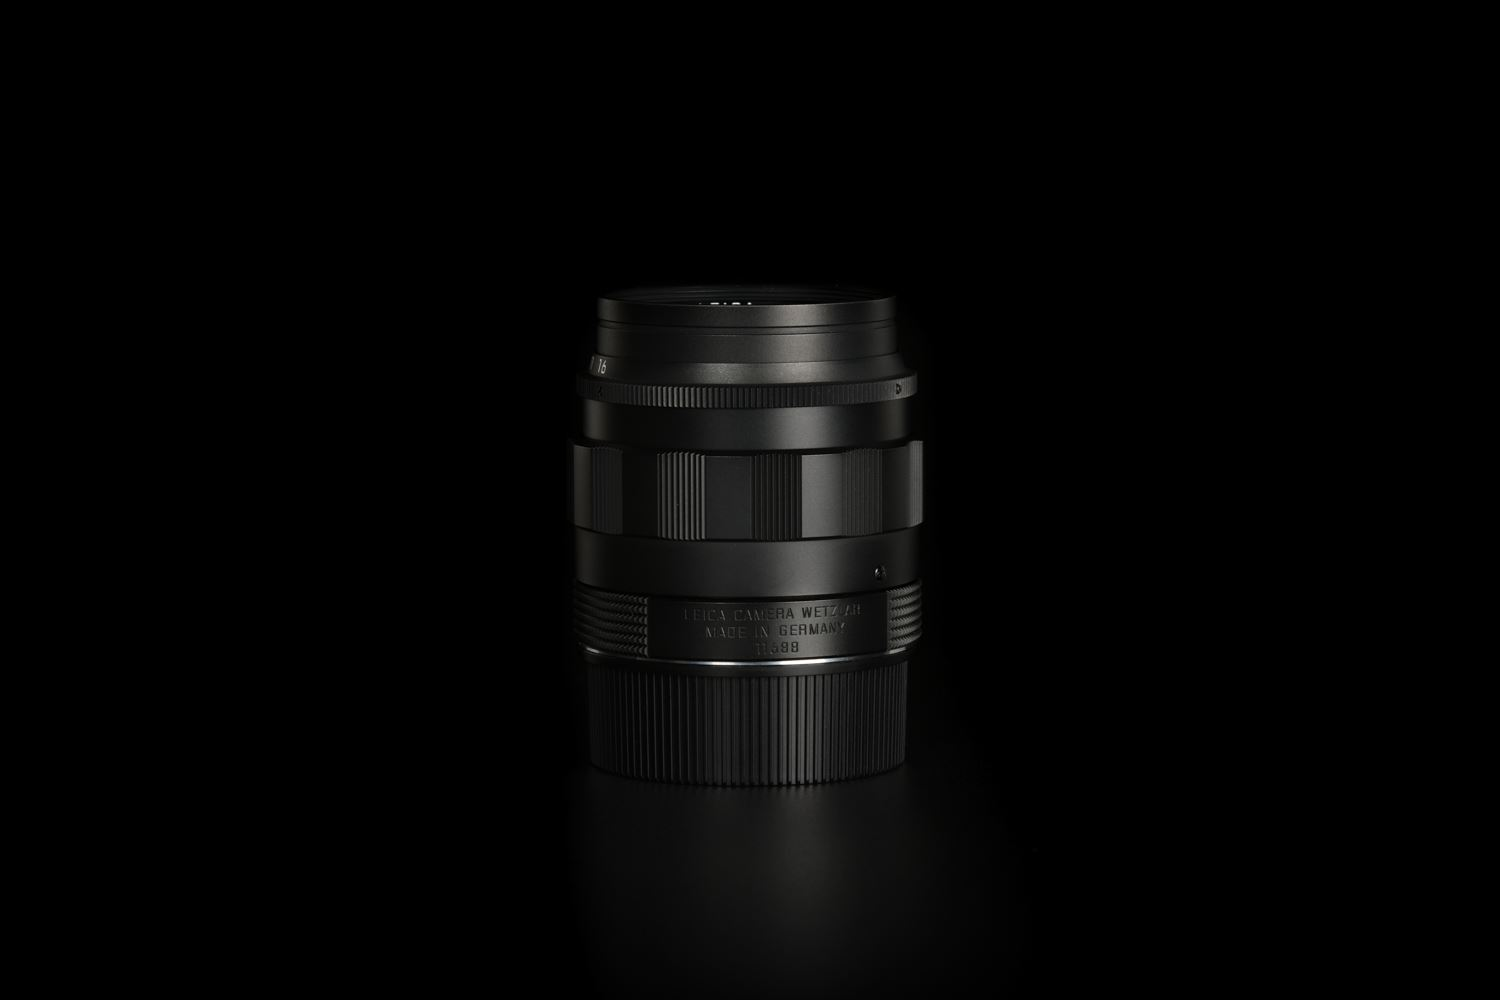 Picture of Leica Summilux-M 50mm f/1.4 ASPH E43 Black Chrome